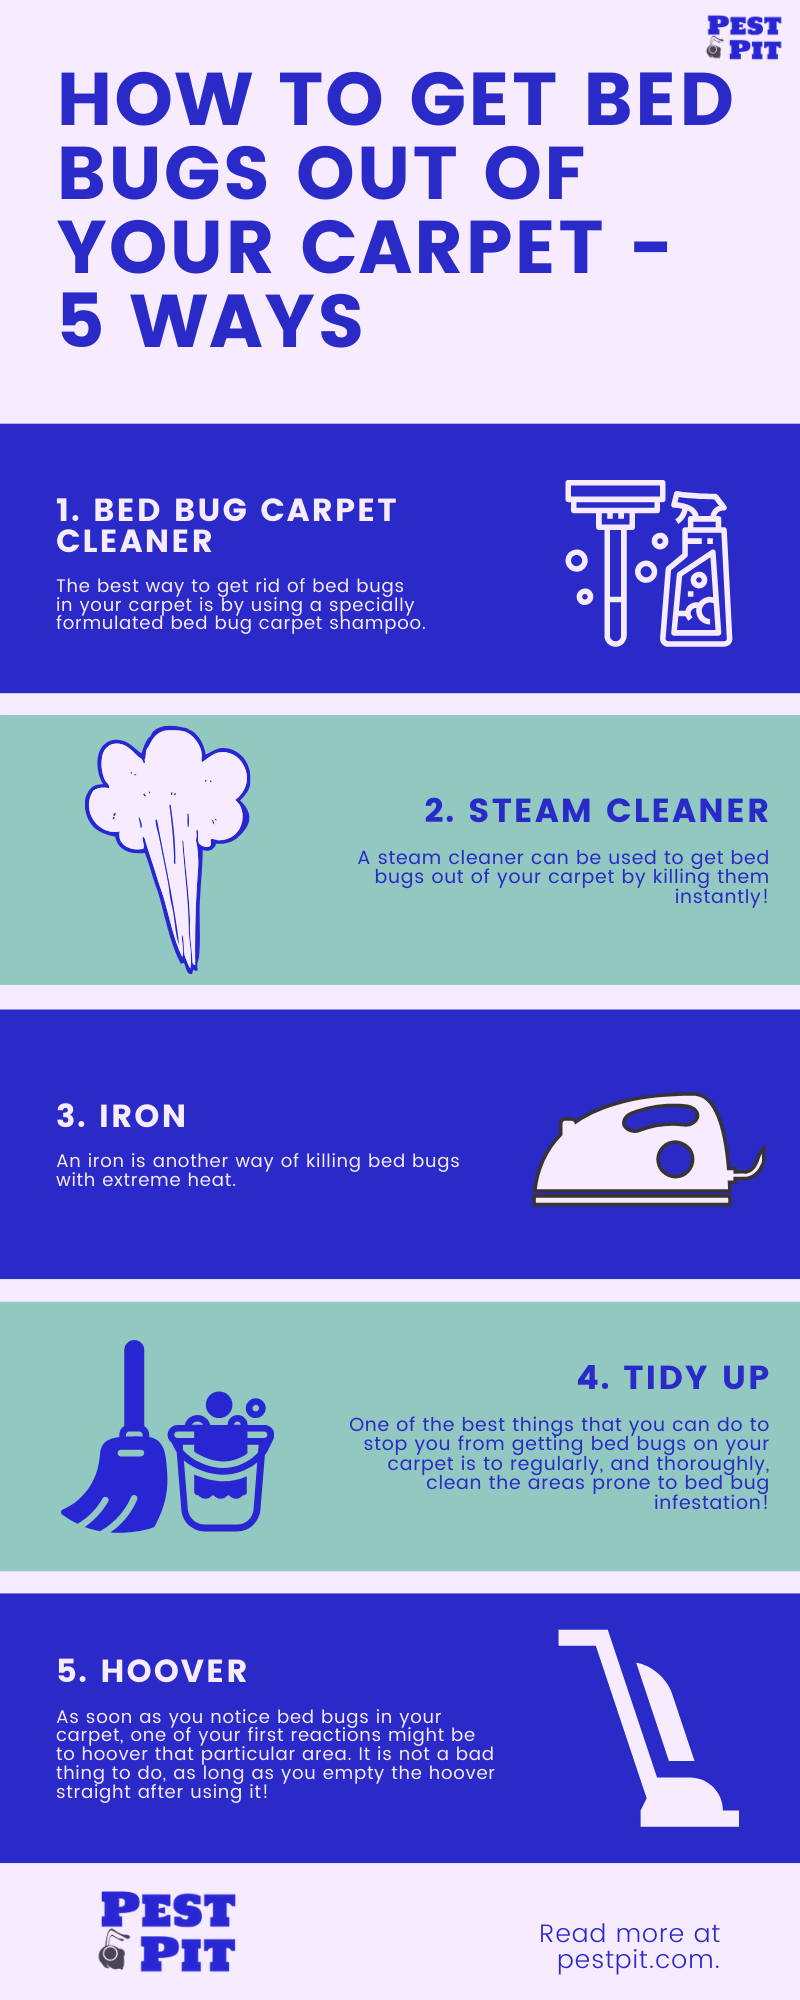 How To Get Bed Bugs Out Of Your Carpet Infographic